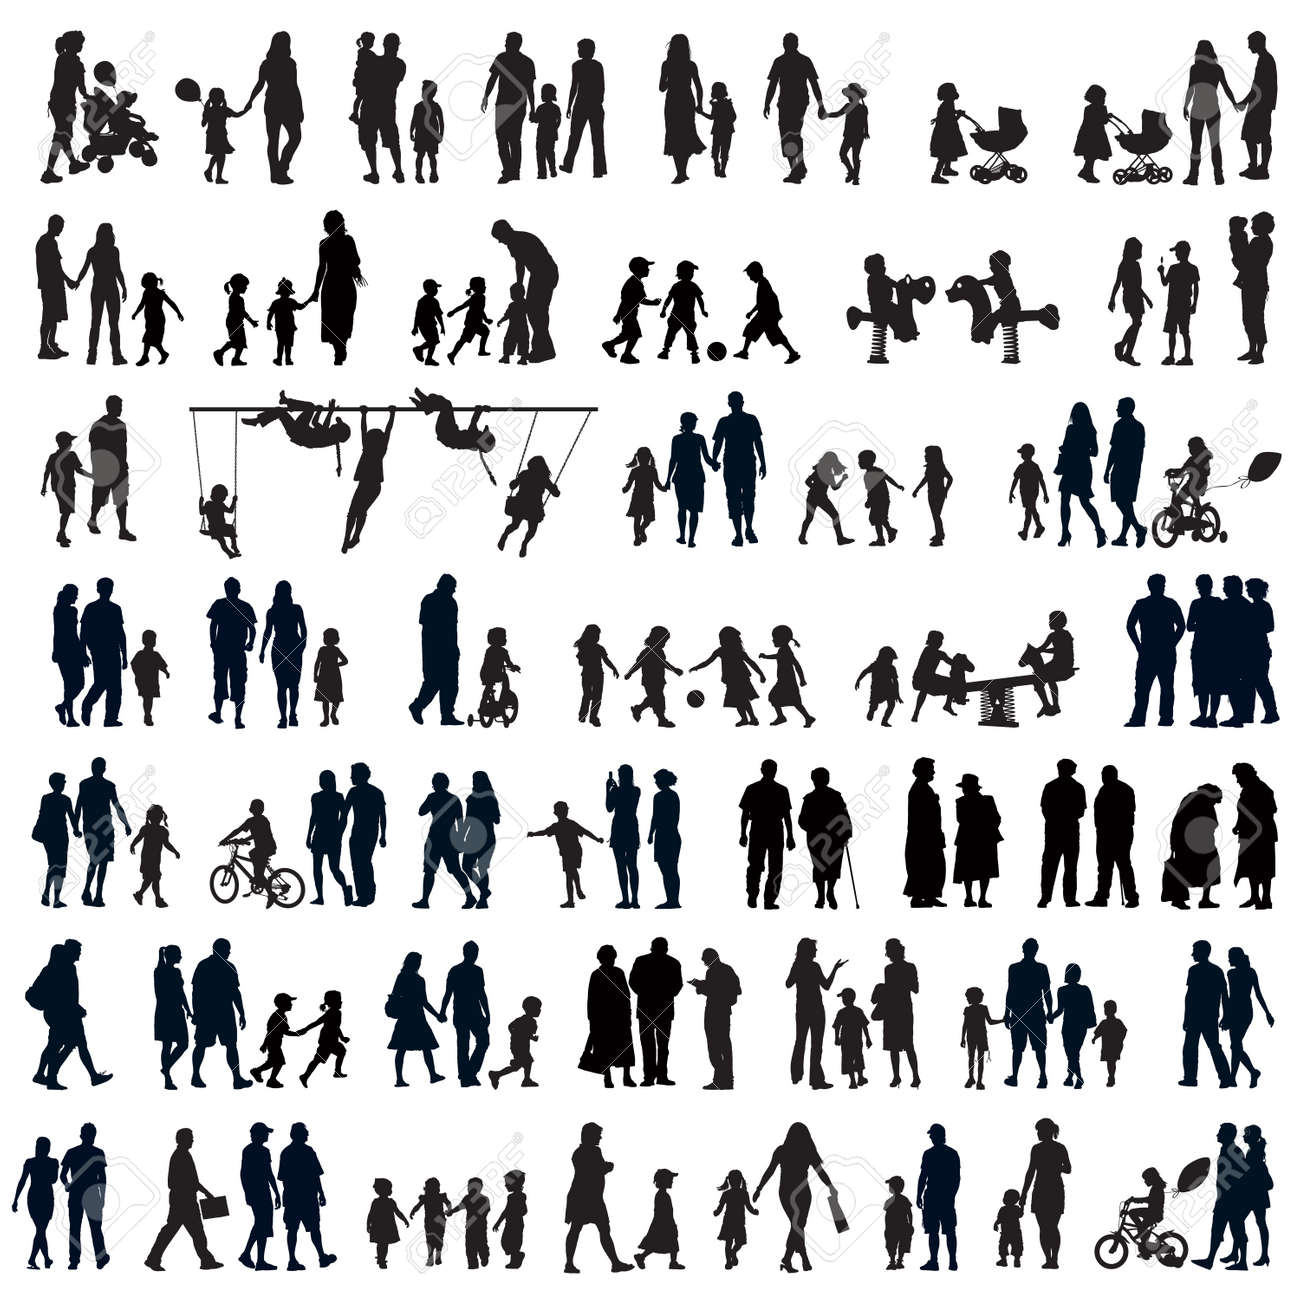 Large set of people silhouettes. Families, couples, kids and elderly people. Standard-Bild - 34577240